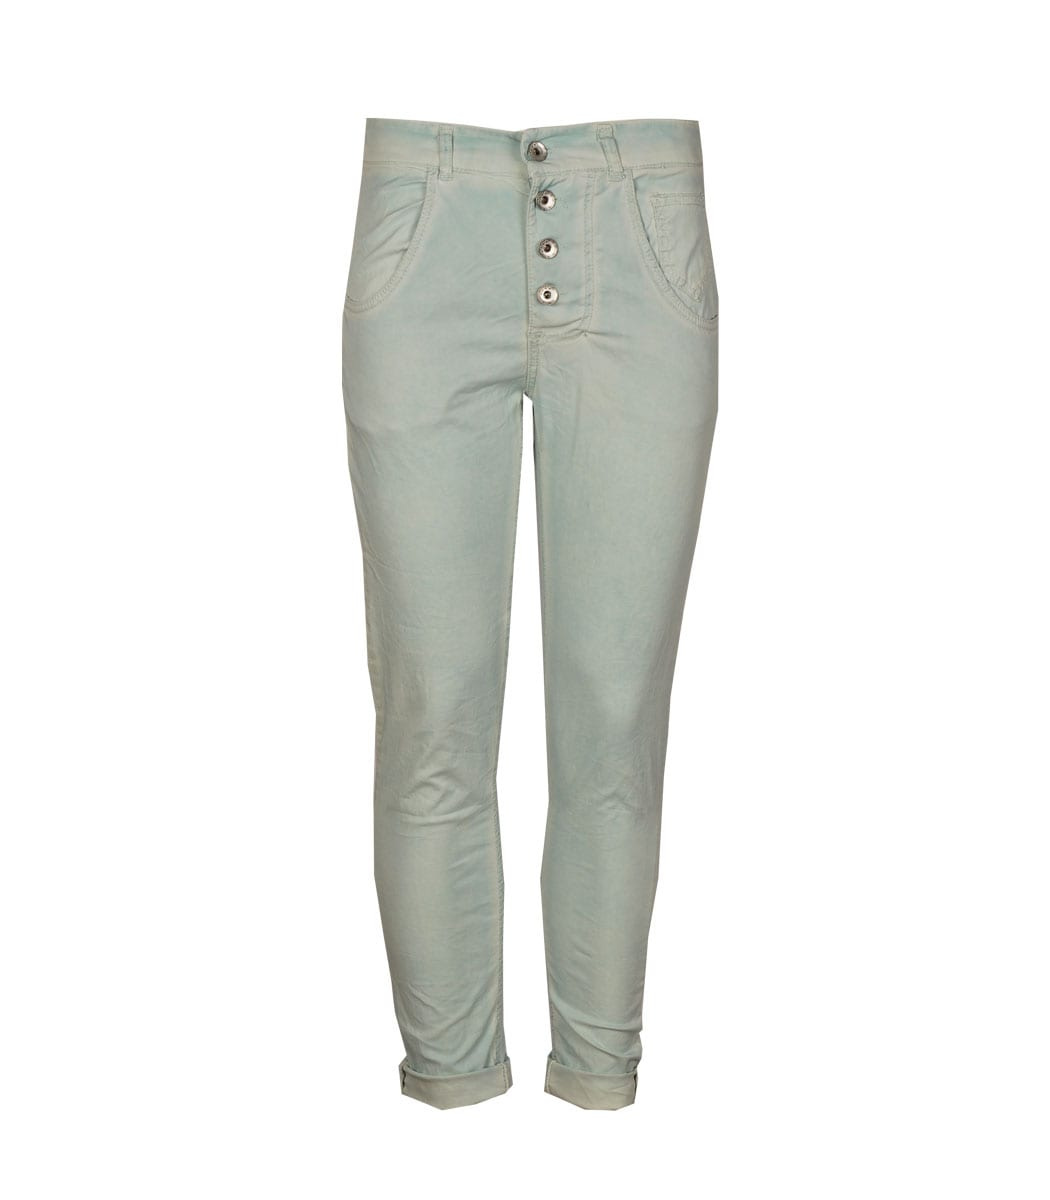 2-Textured washed pants